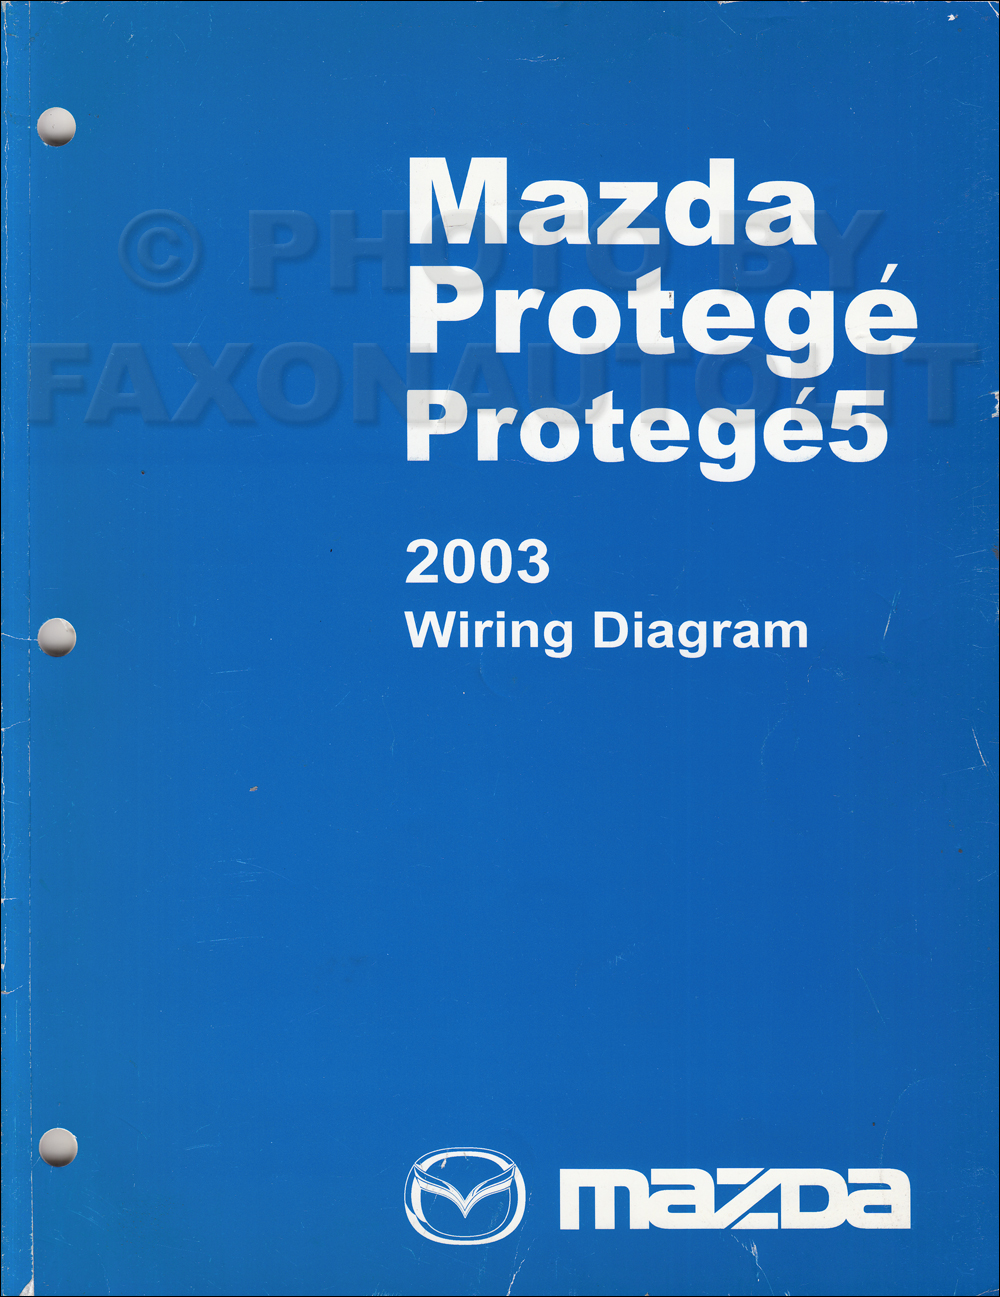 Mazda Protege Diagram Schematics Wiring Diagrams 1993 Jeep Radio 2003 And Protege5 Manual Original Rh Faxonautoliterature Com Fuse Box